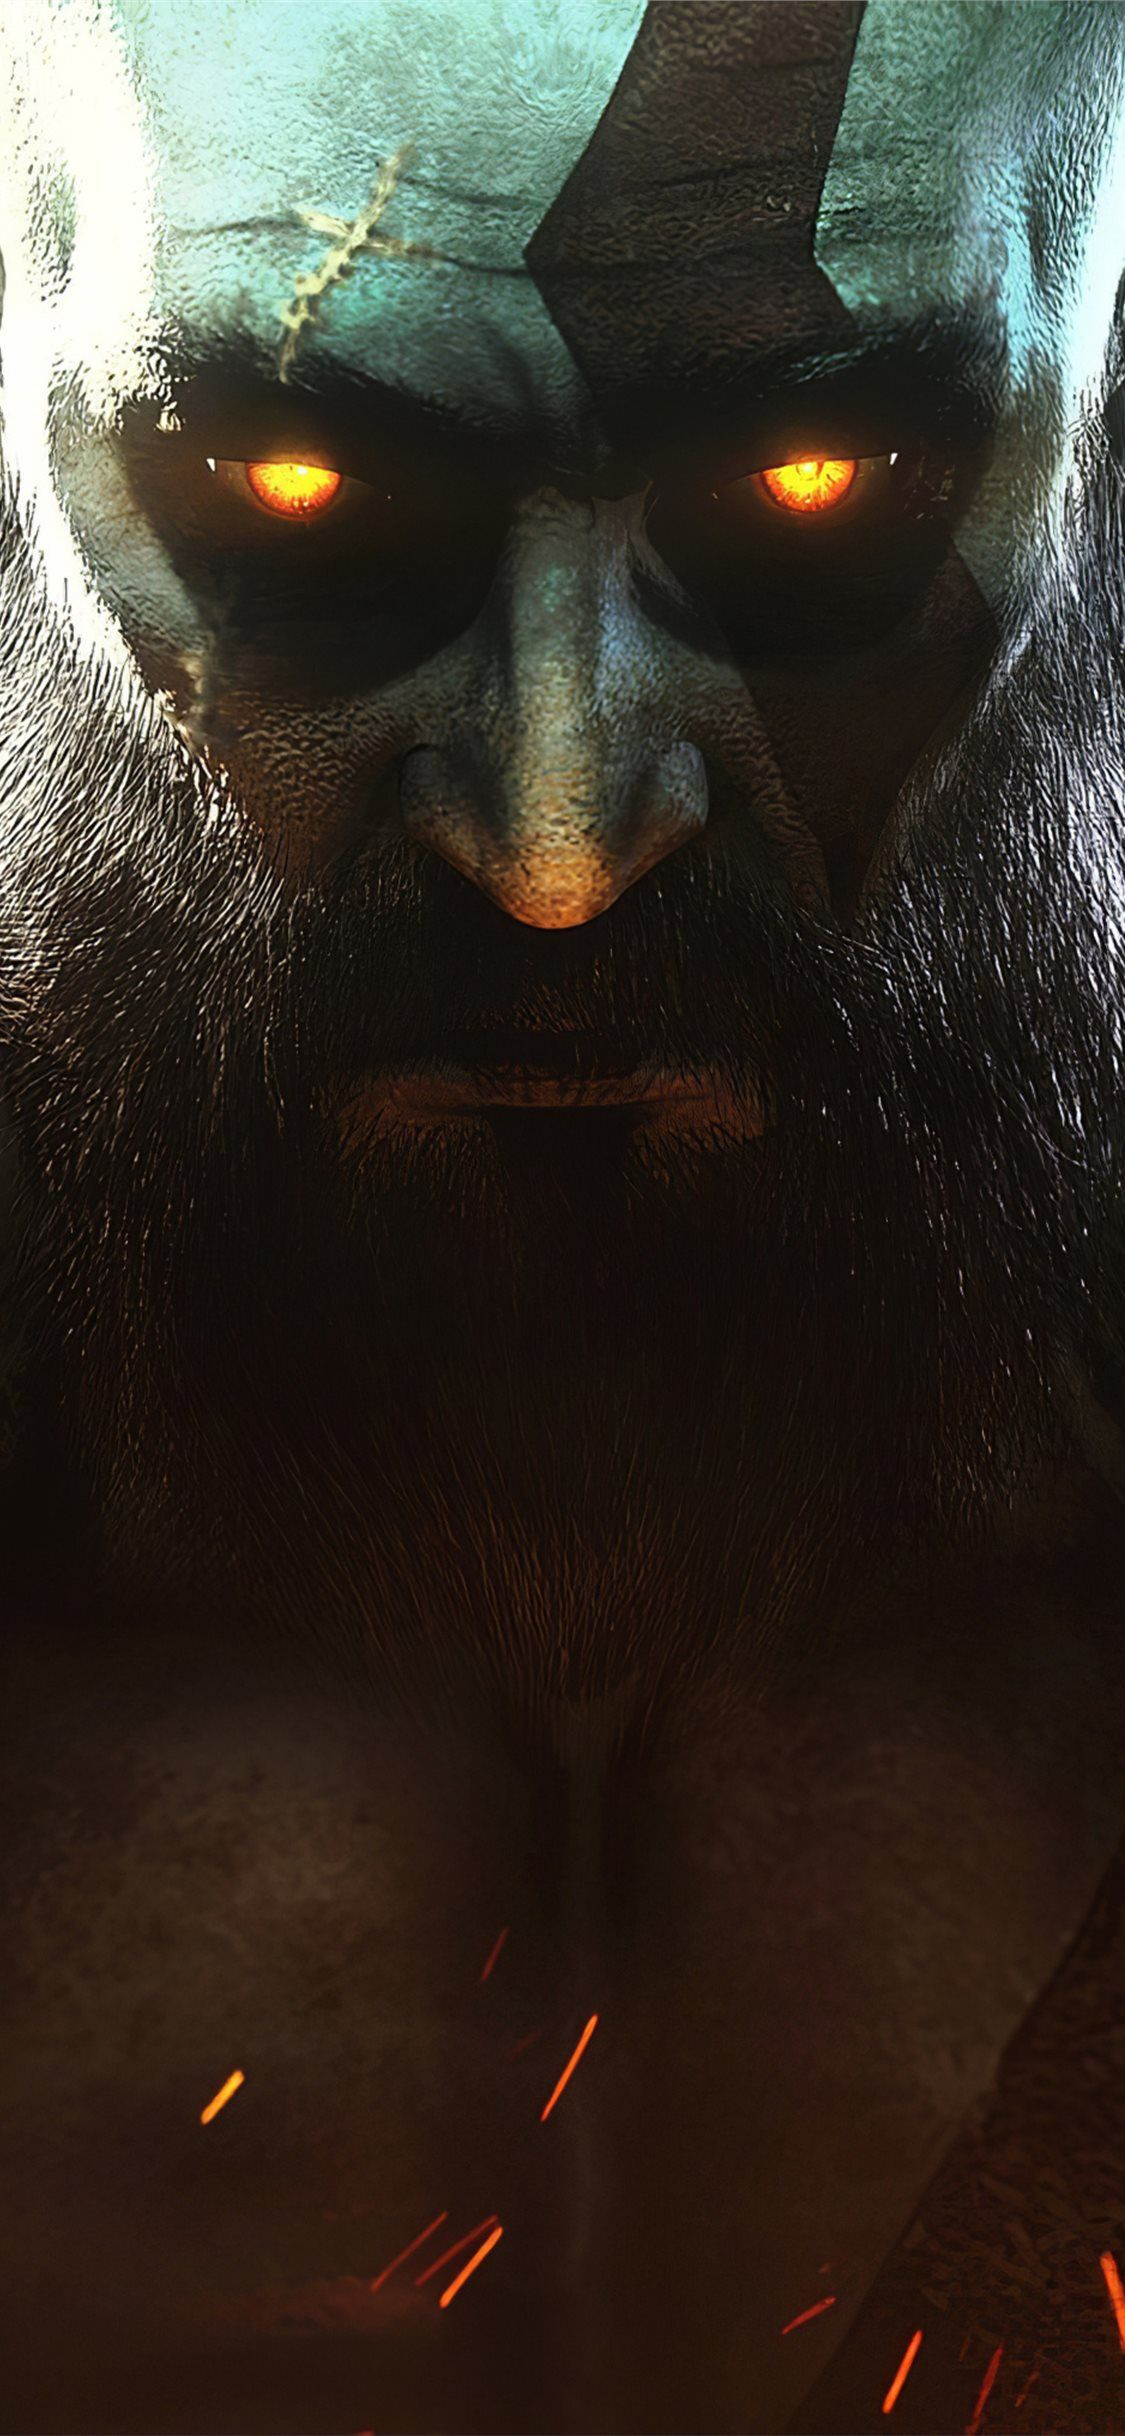 Free Download The Ghost Of Sparta God Of War Wallpaper Beaty Your Iphone Kratos God Of War 4 God Of War Games Kratos God Of War God Of War War Artwork